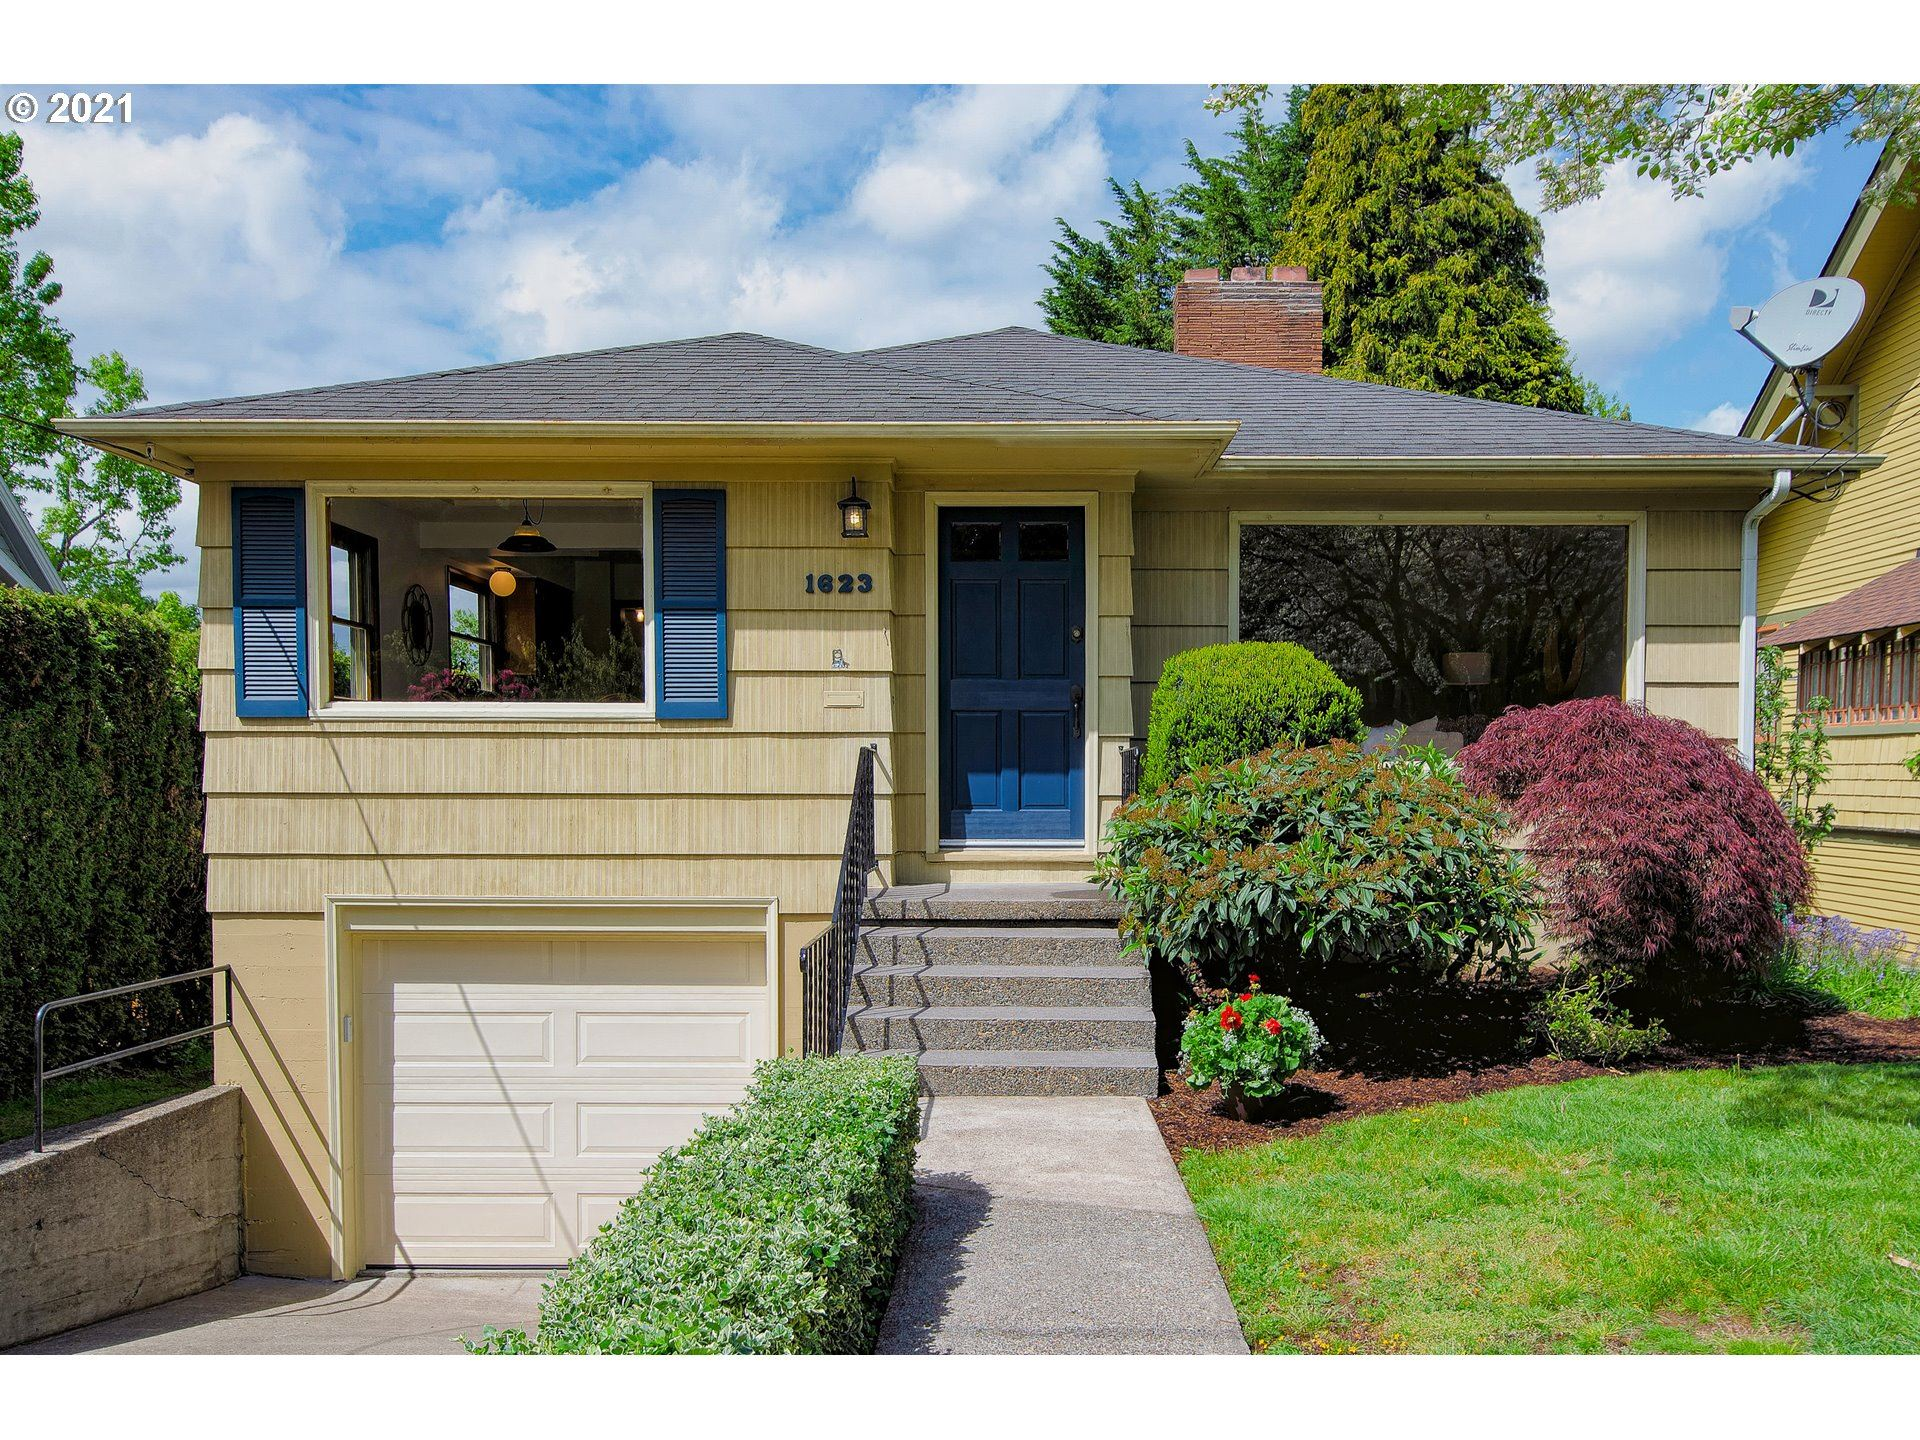 1623 SE 57TH AVE, Portland, OR 97215 - MLS#: 21549407